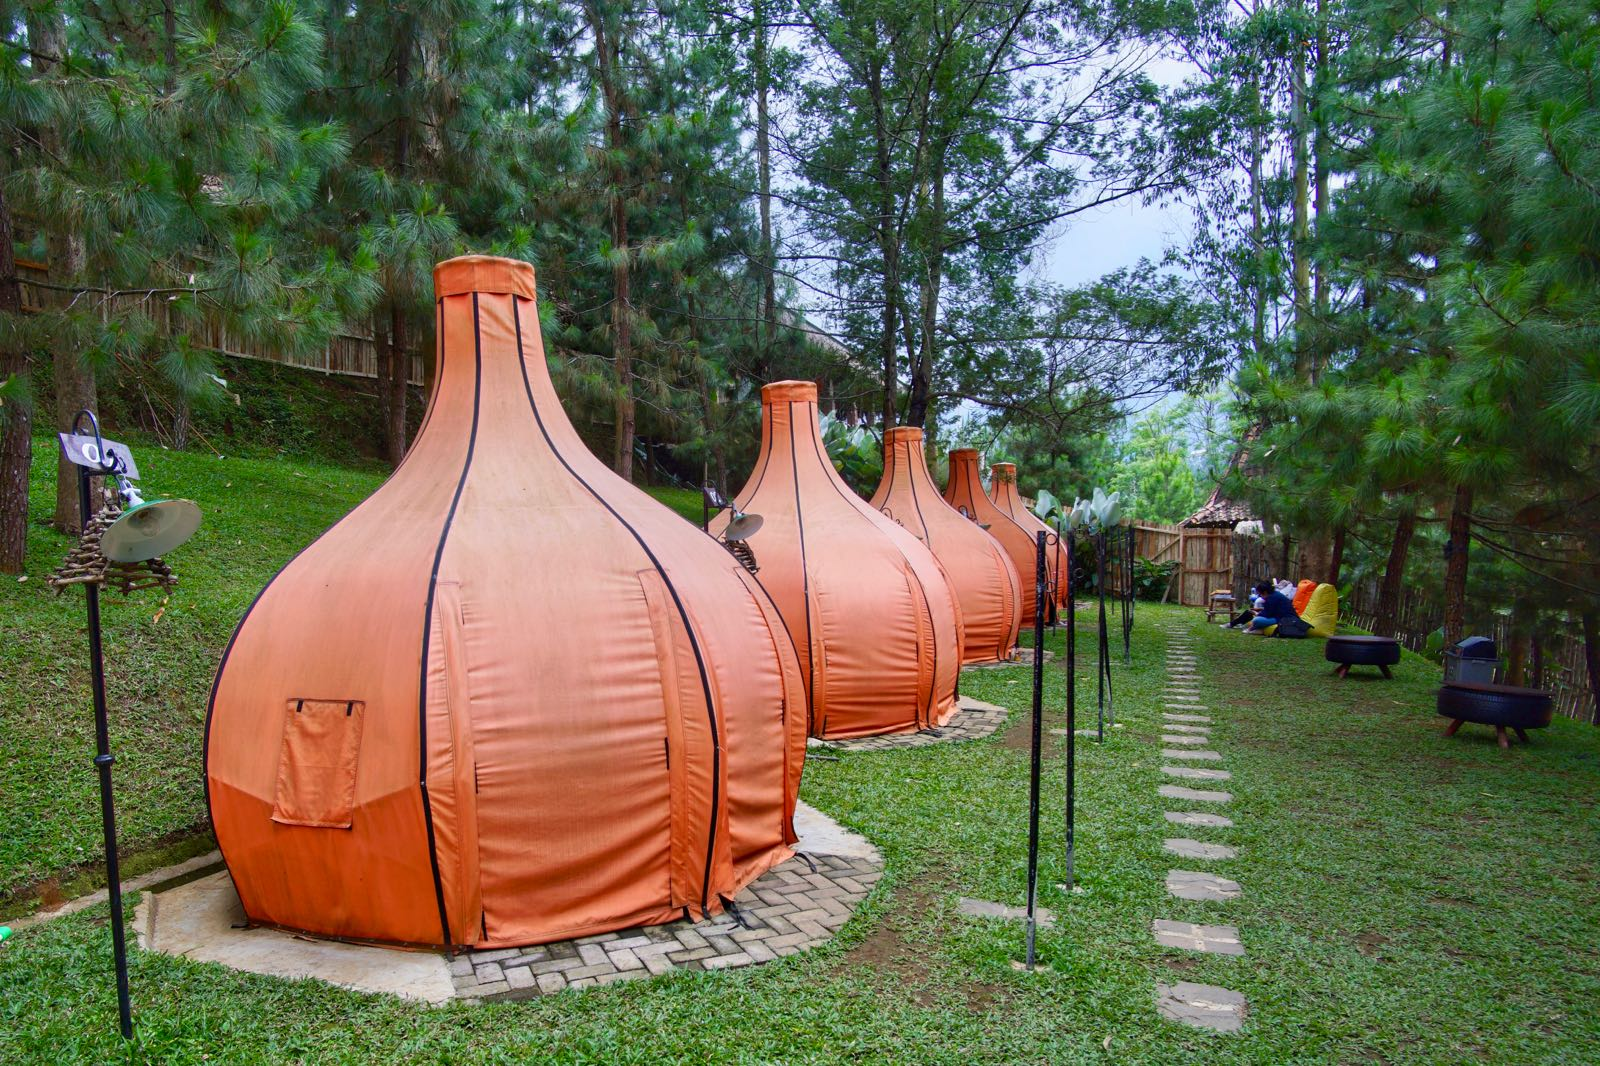 Penginapan Ala Glamping Di The Lodge Maribaya